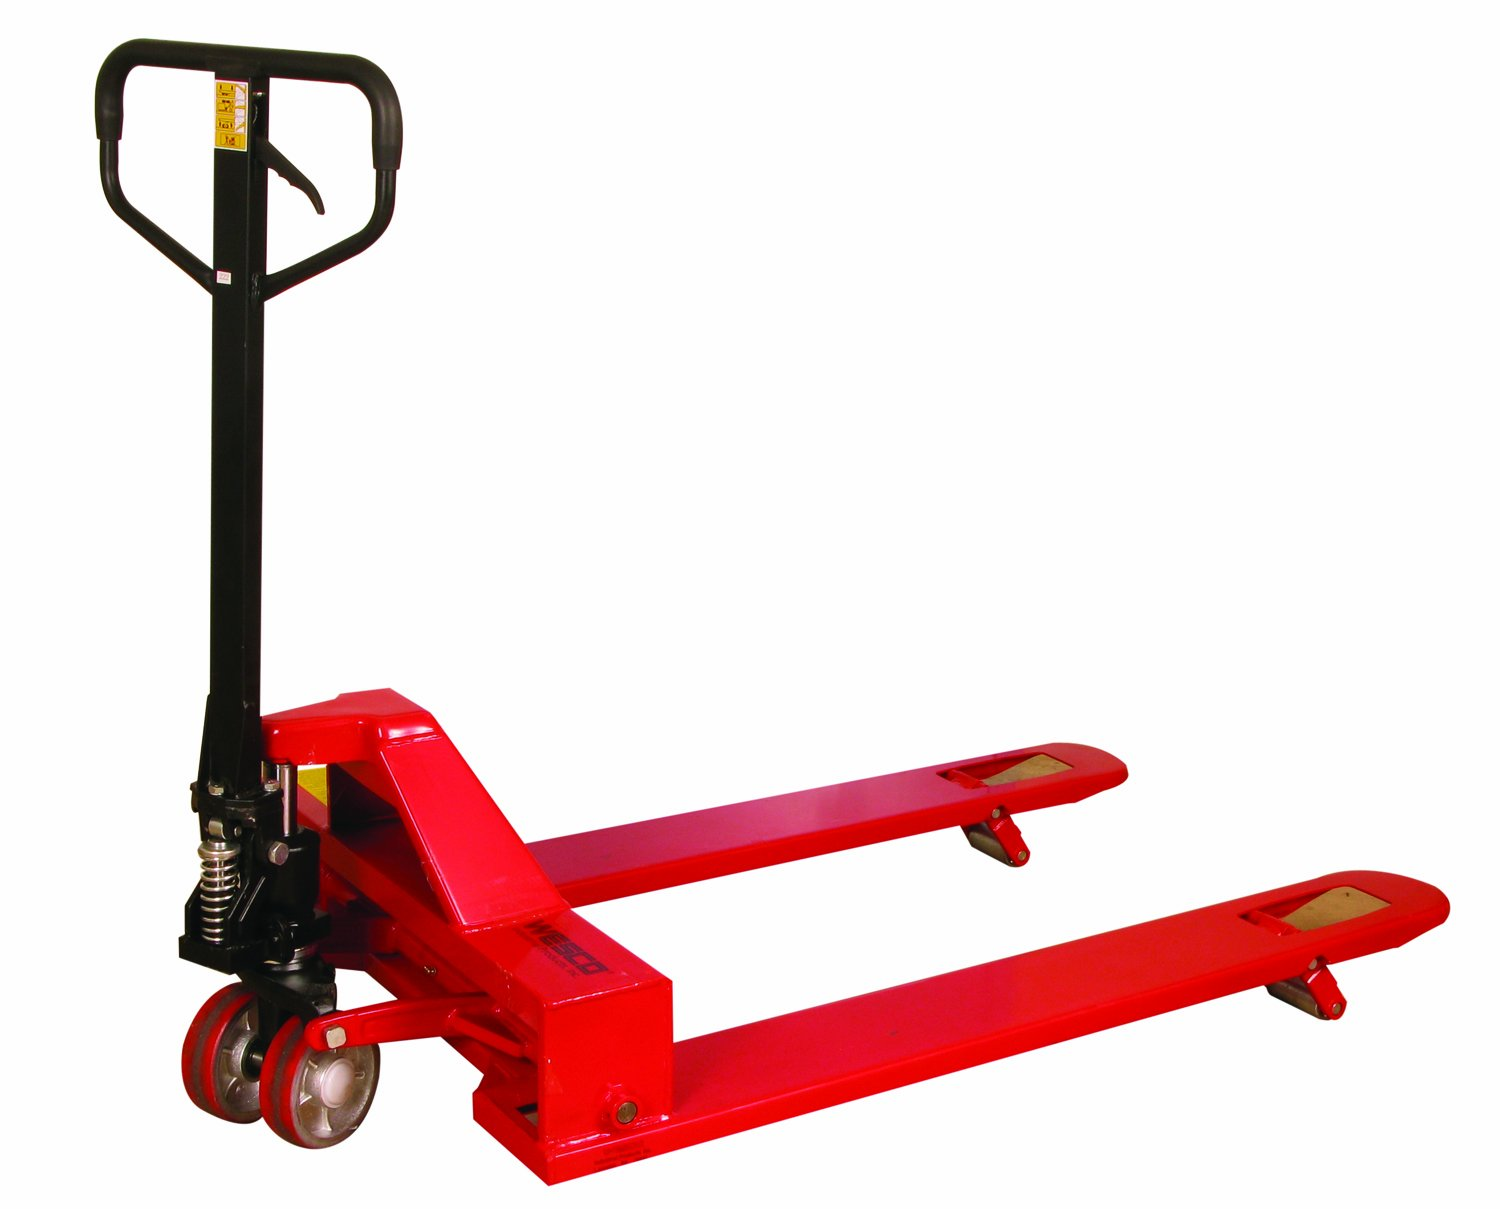 Wesco 273400 4-Way Pallet Truck with Handle, Polyurethane Wheels, 4,000 lb. Load Capacity, 47'' Height, 48'' Length x 33'' Width